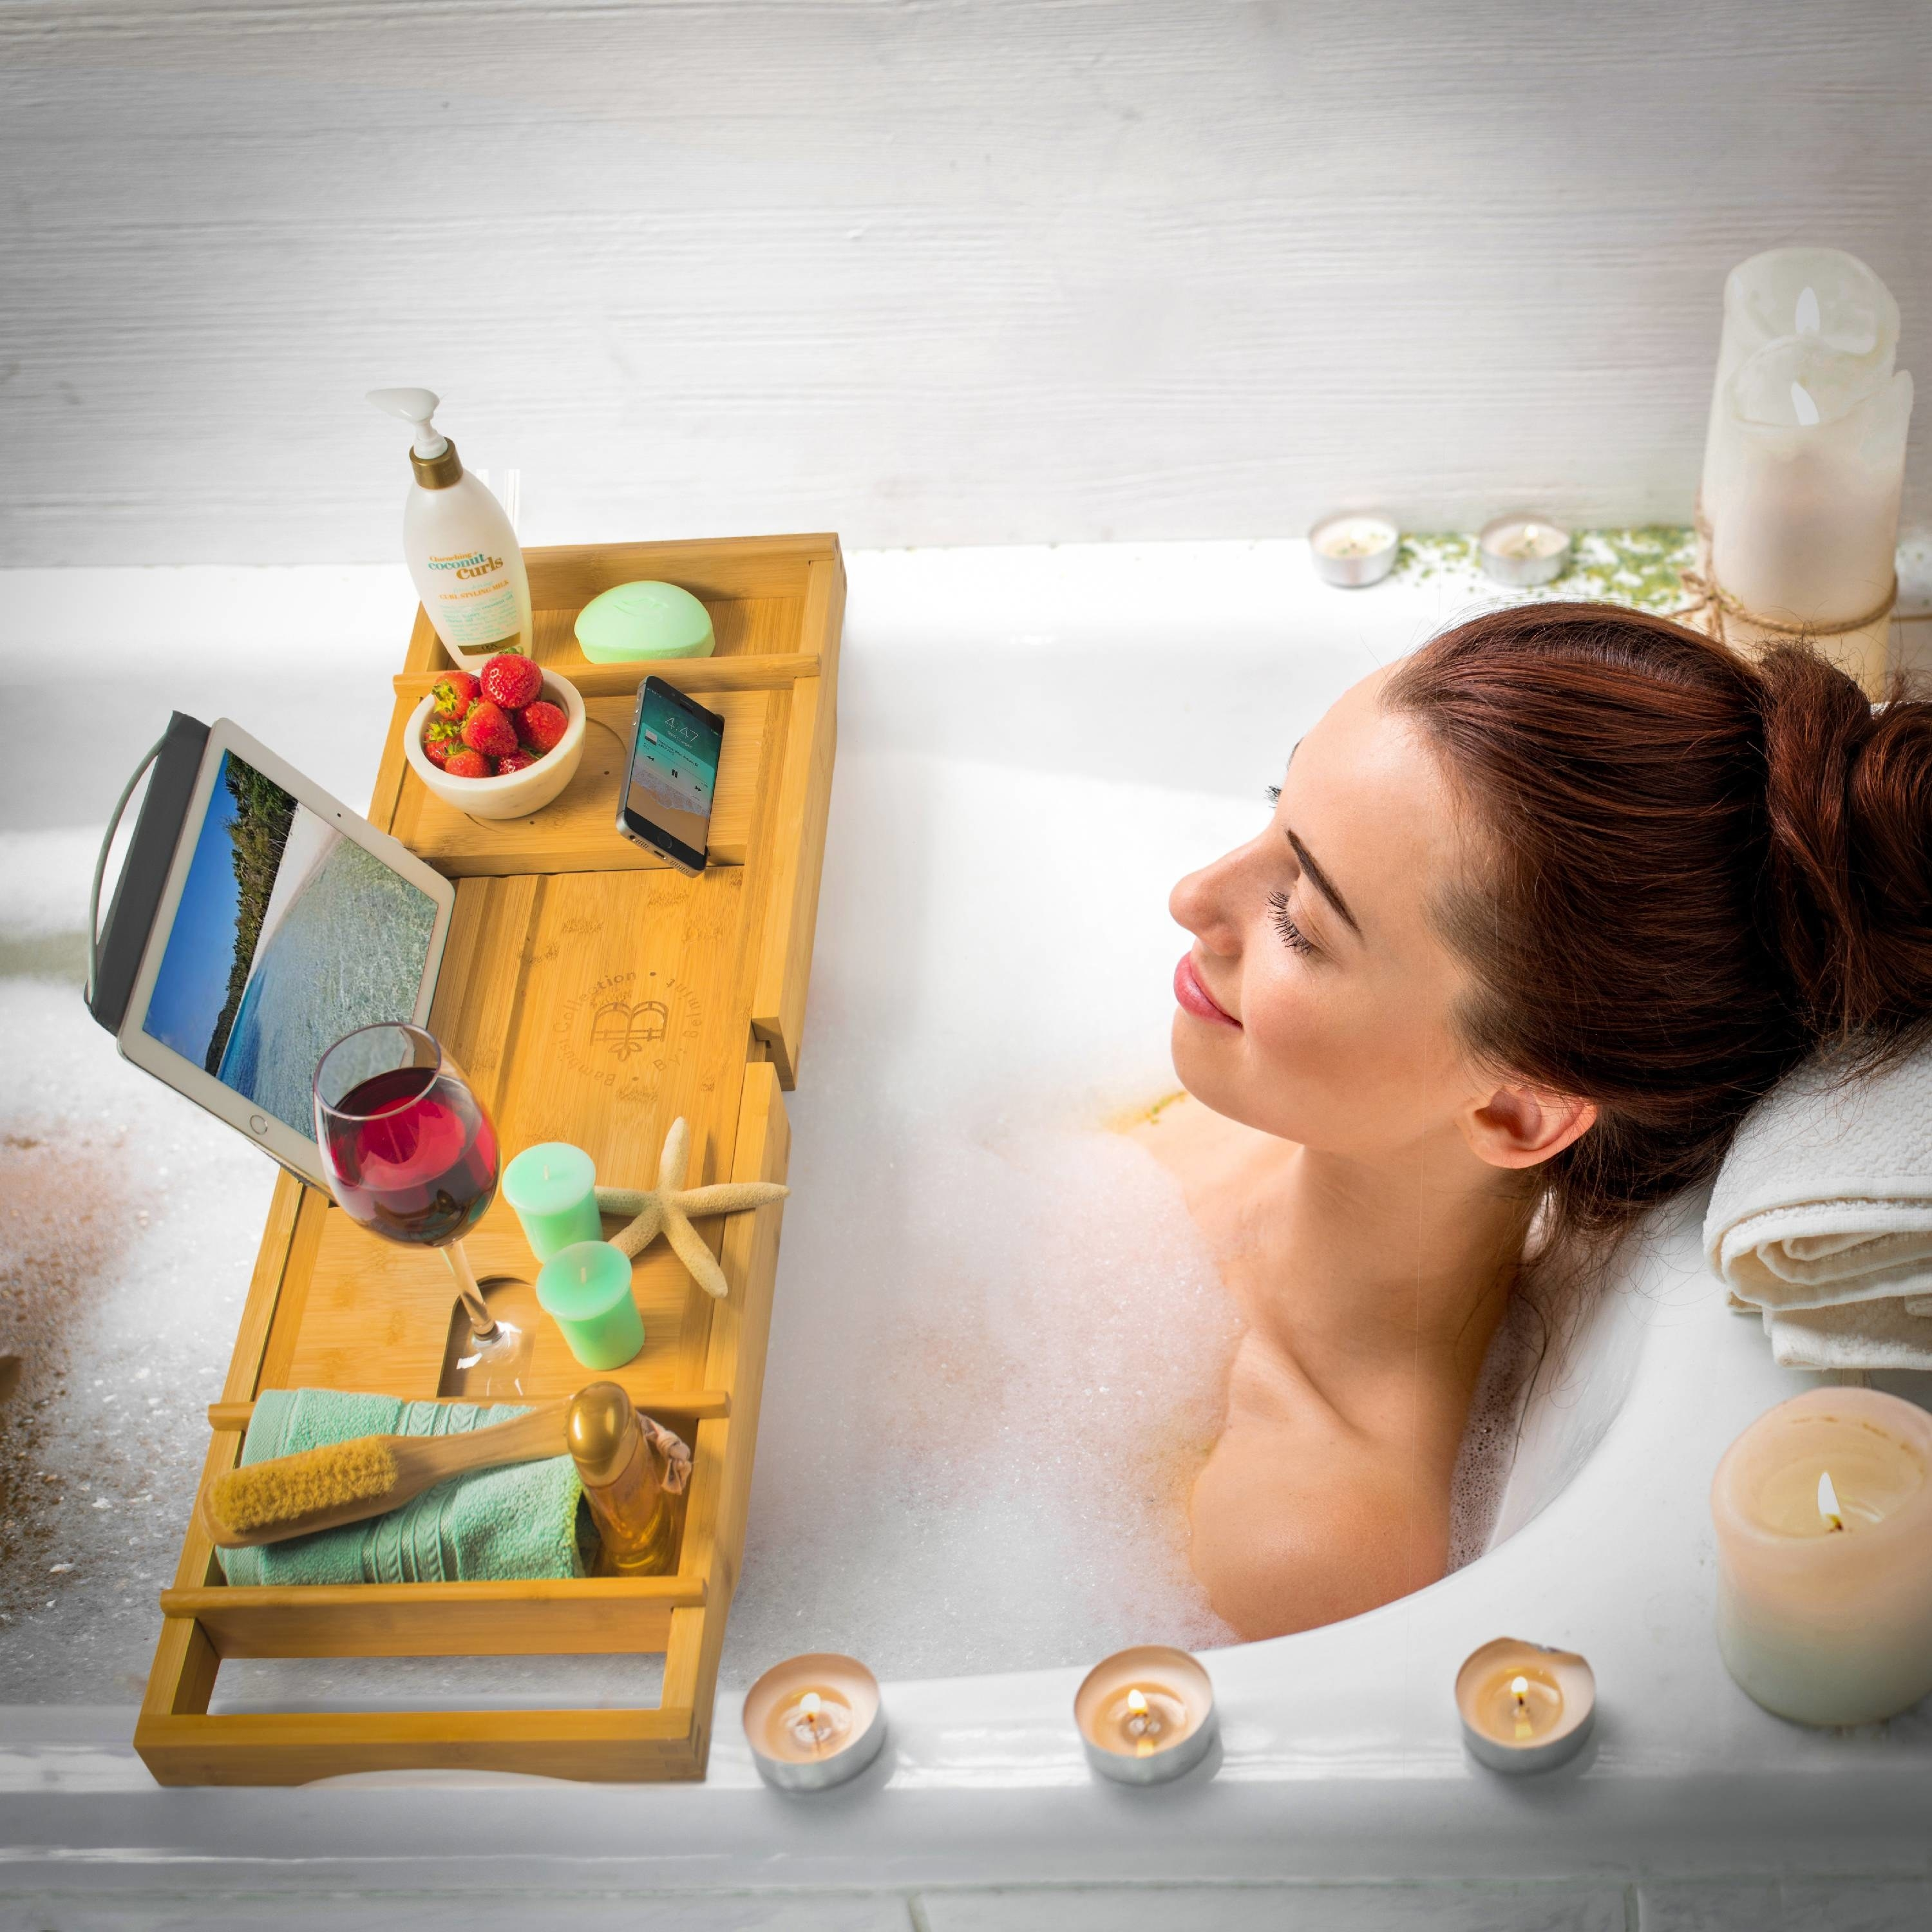 A model in the bath using the tray